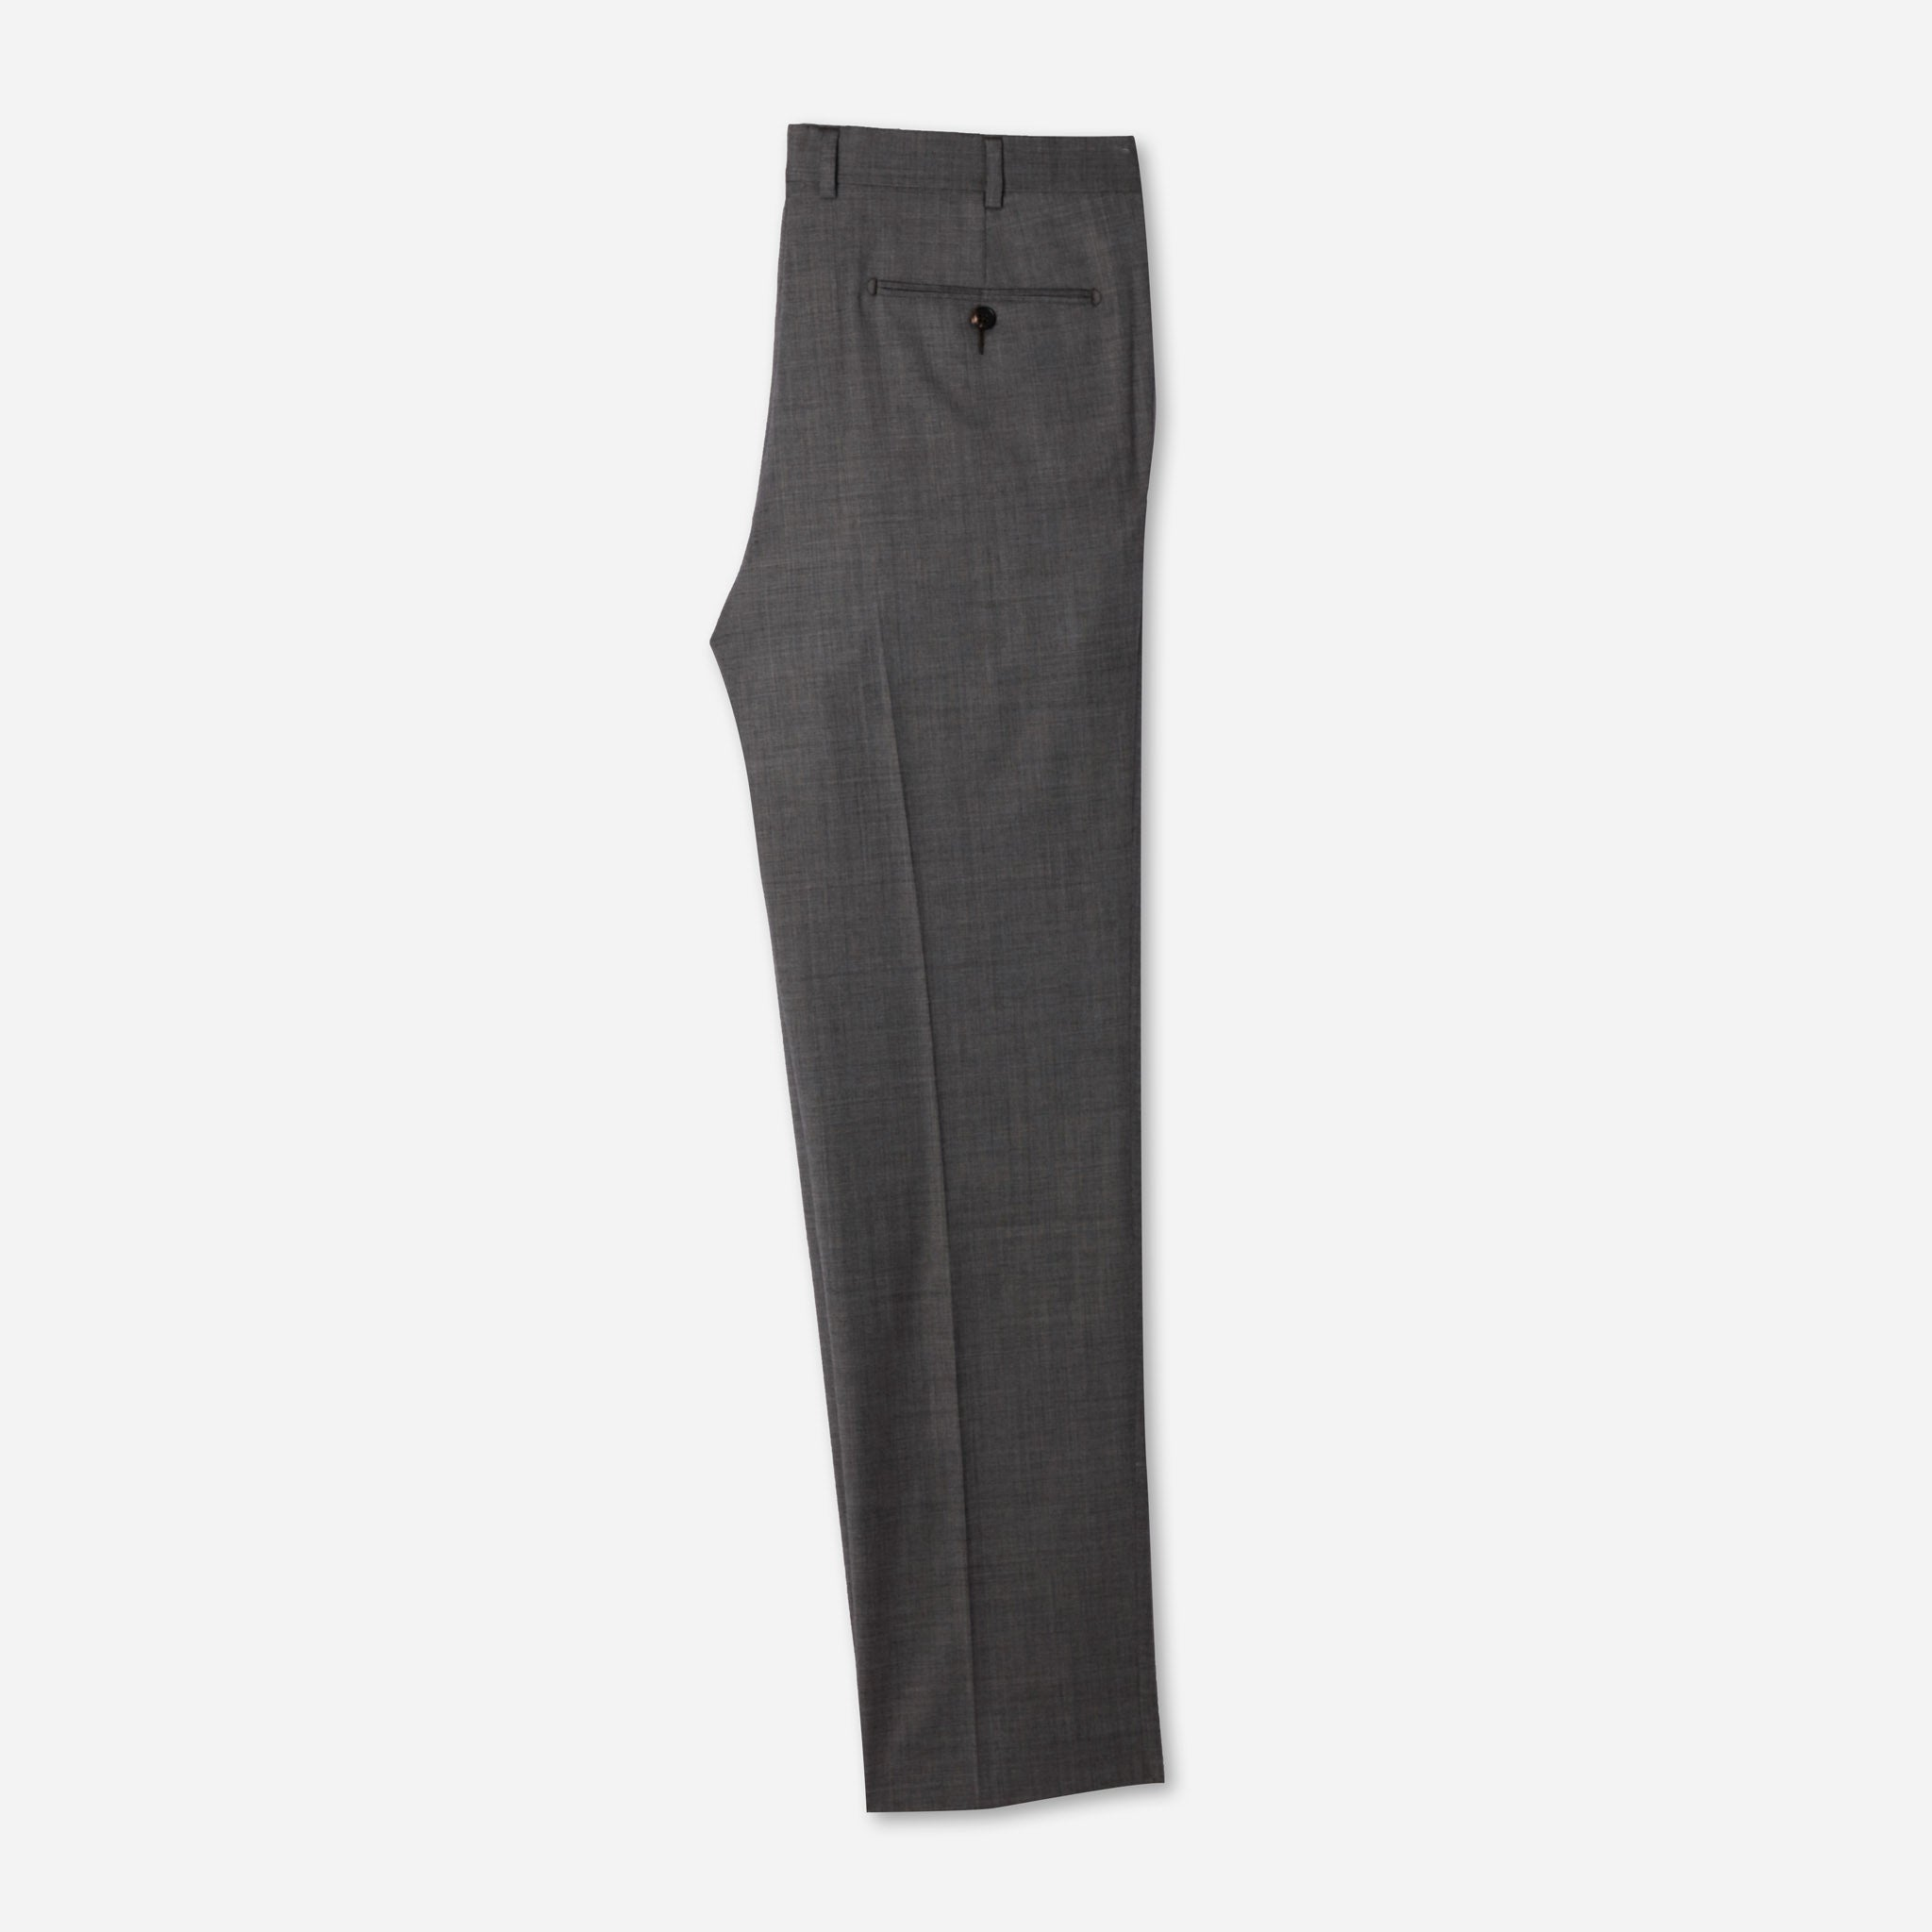 Essential Everyday Trousers in Medium Gray Sharkskin